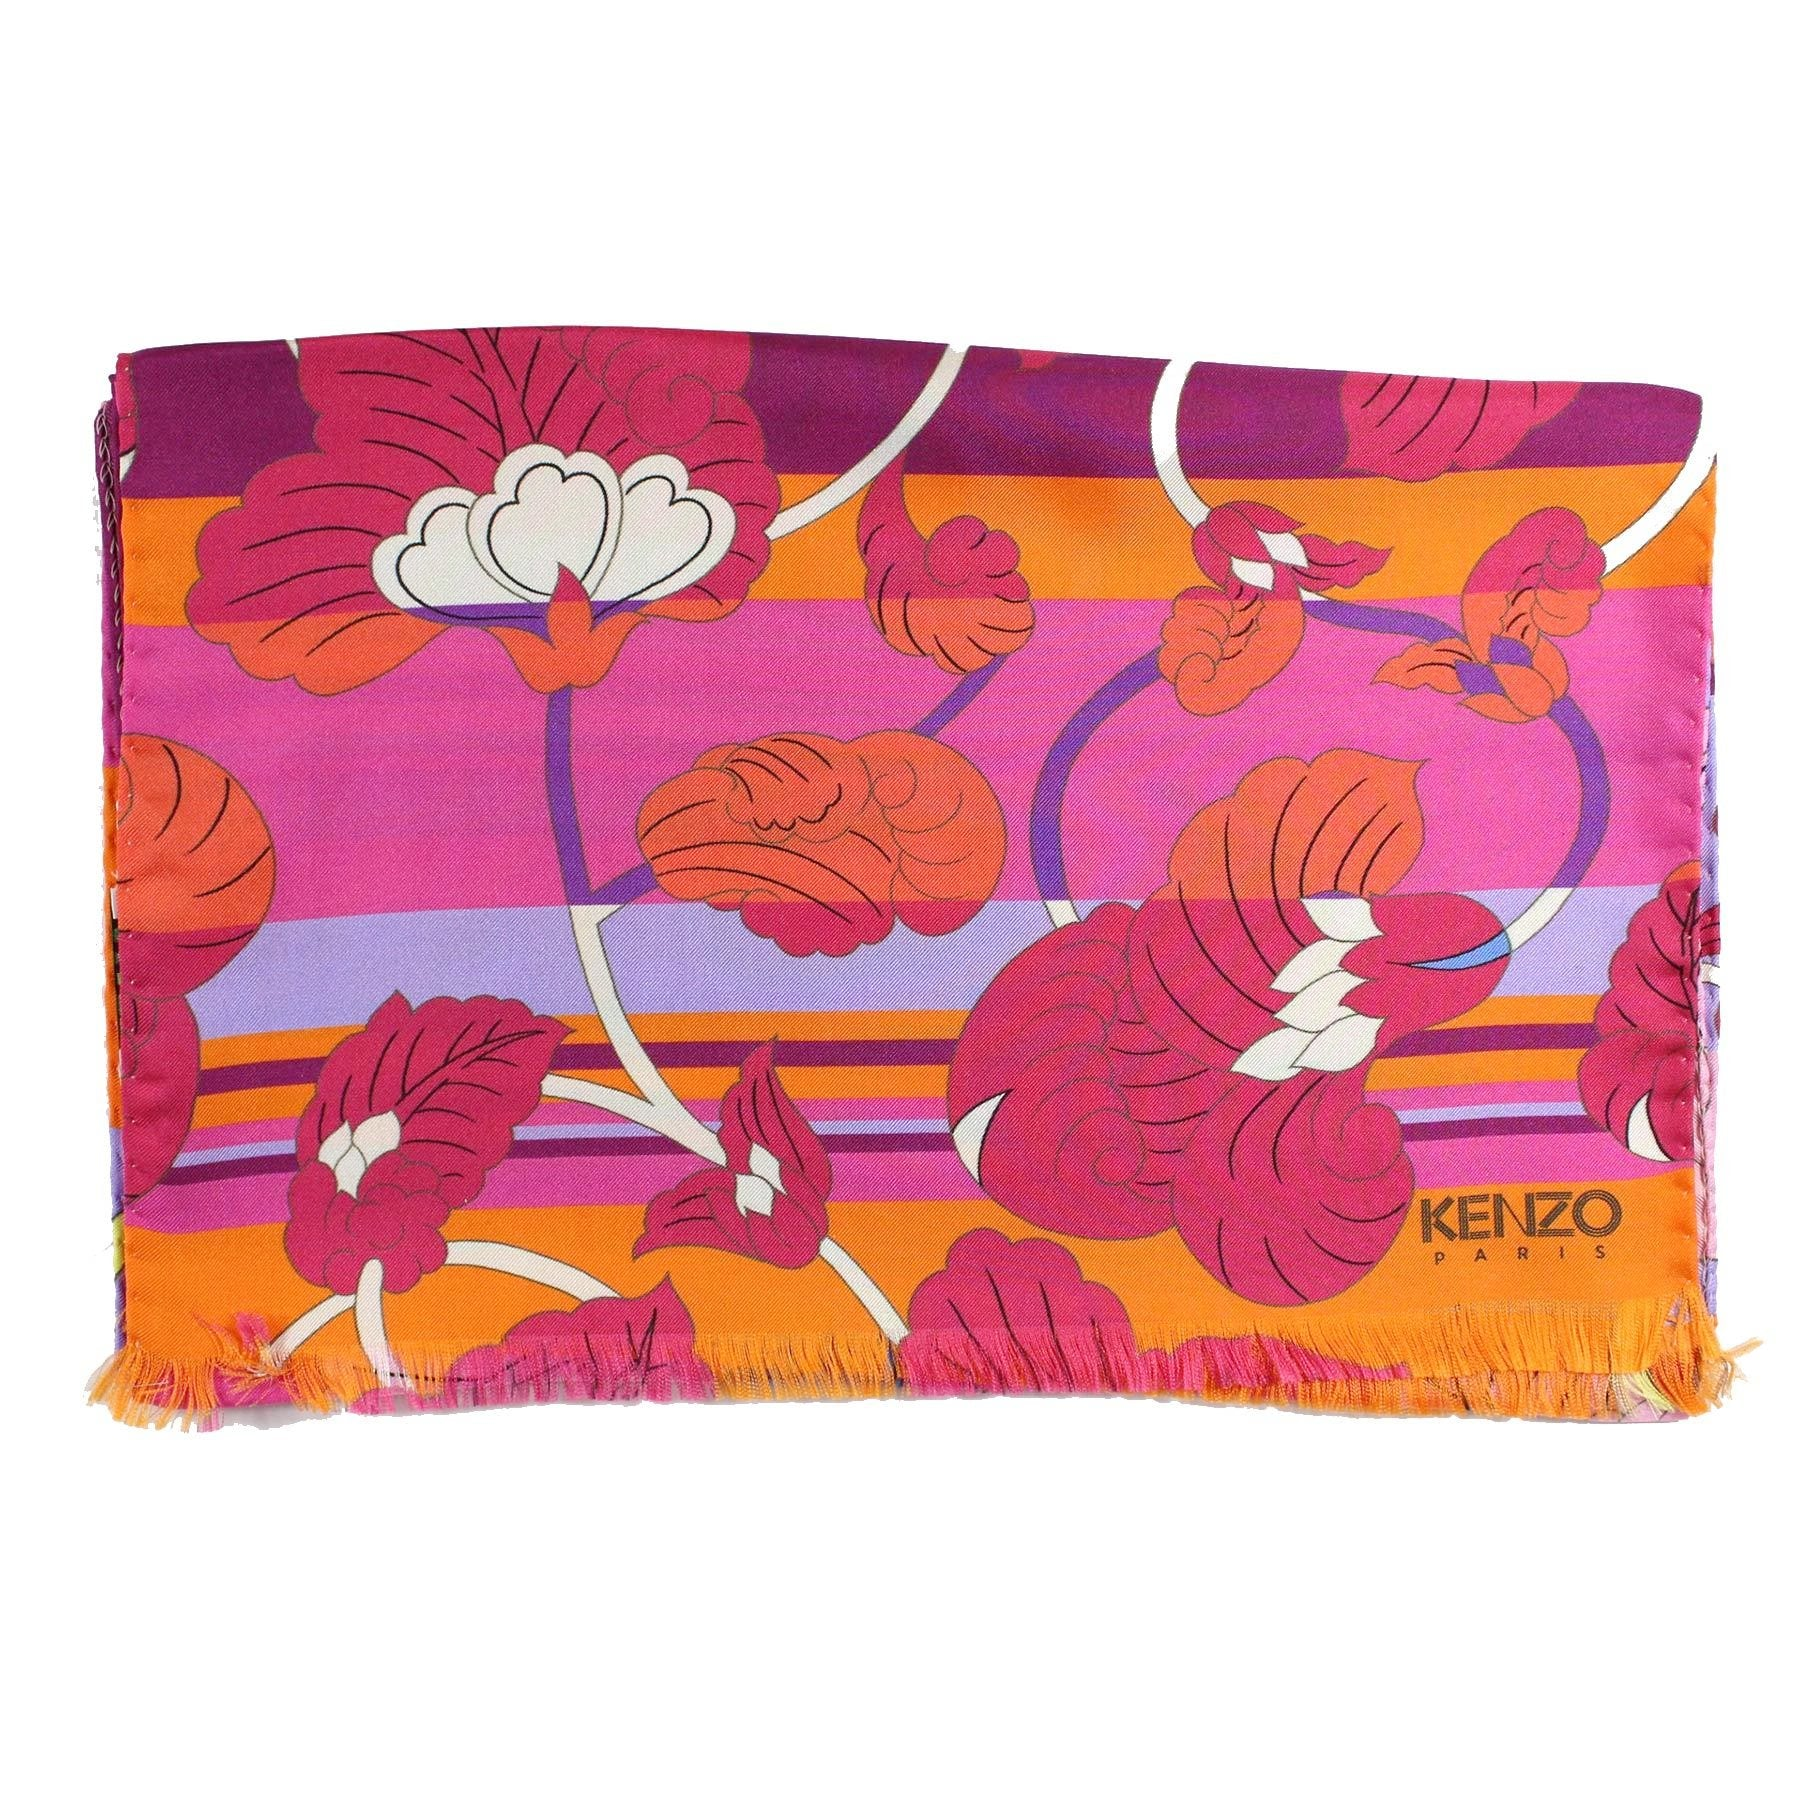 Kenzo Scarf Orange Purple Pink Flowers - Twill Silk Shawl